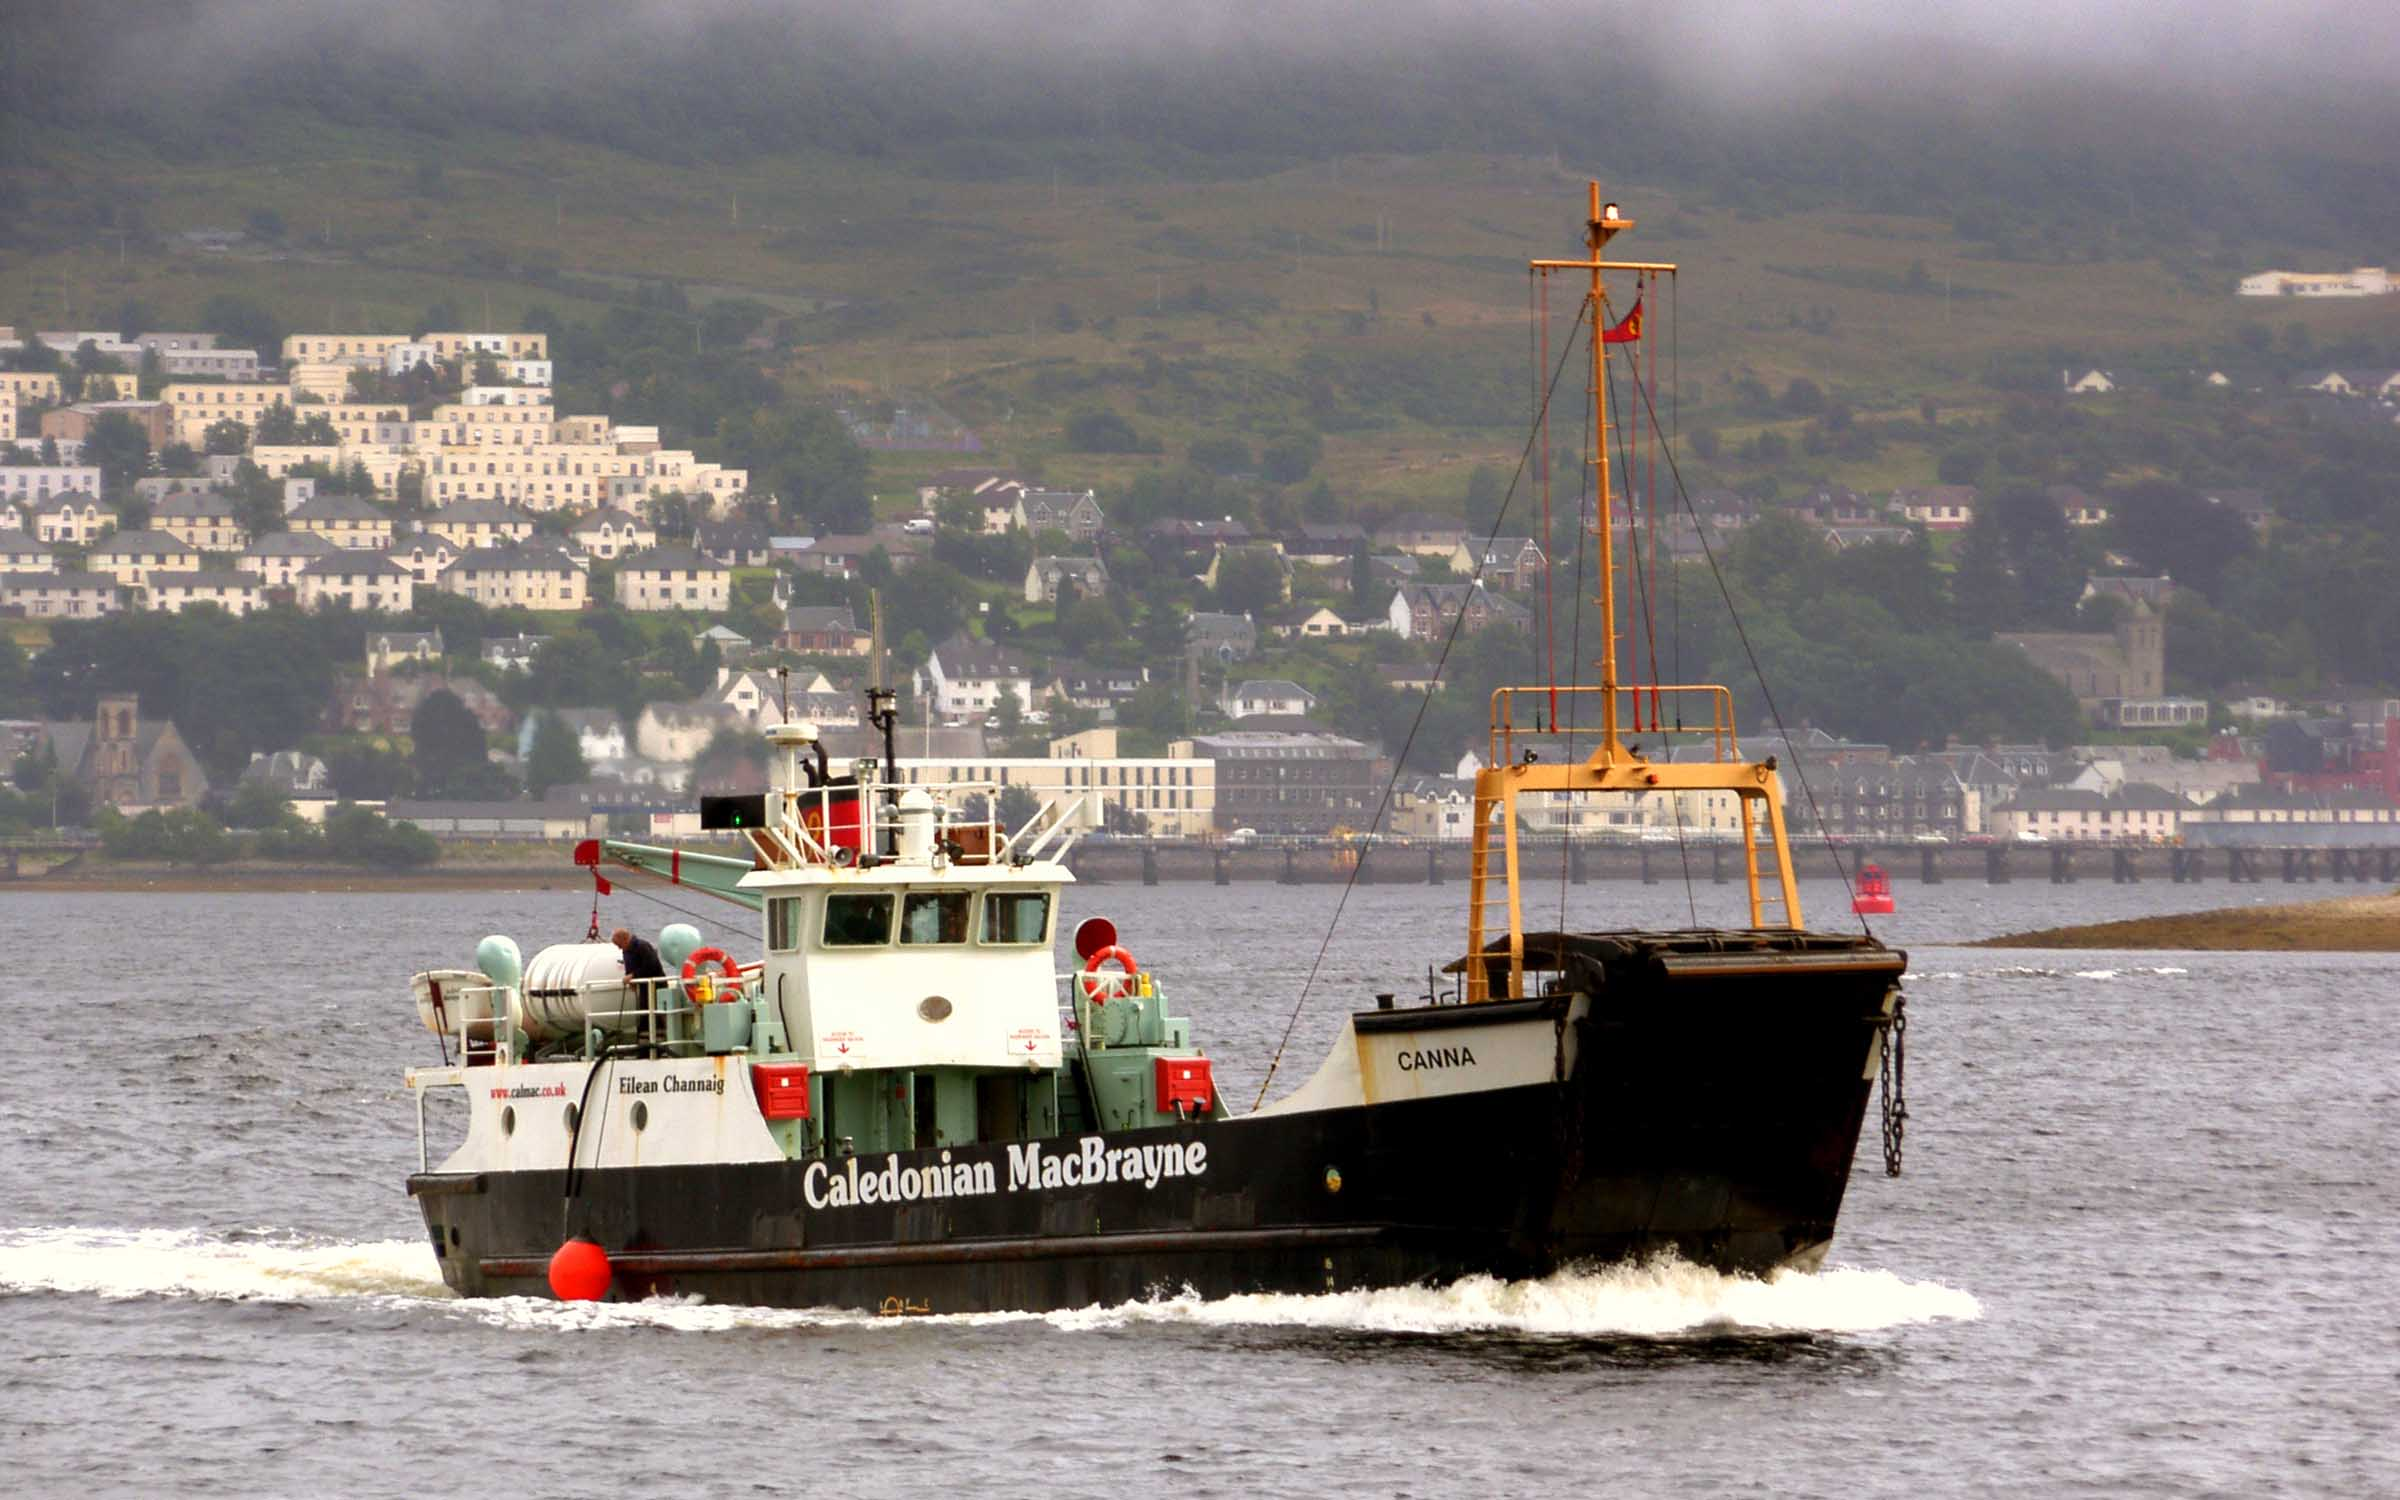 Canna near Fort William (Ships of CalMac)